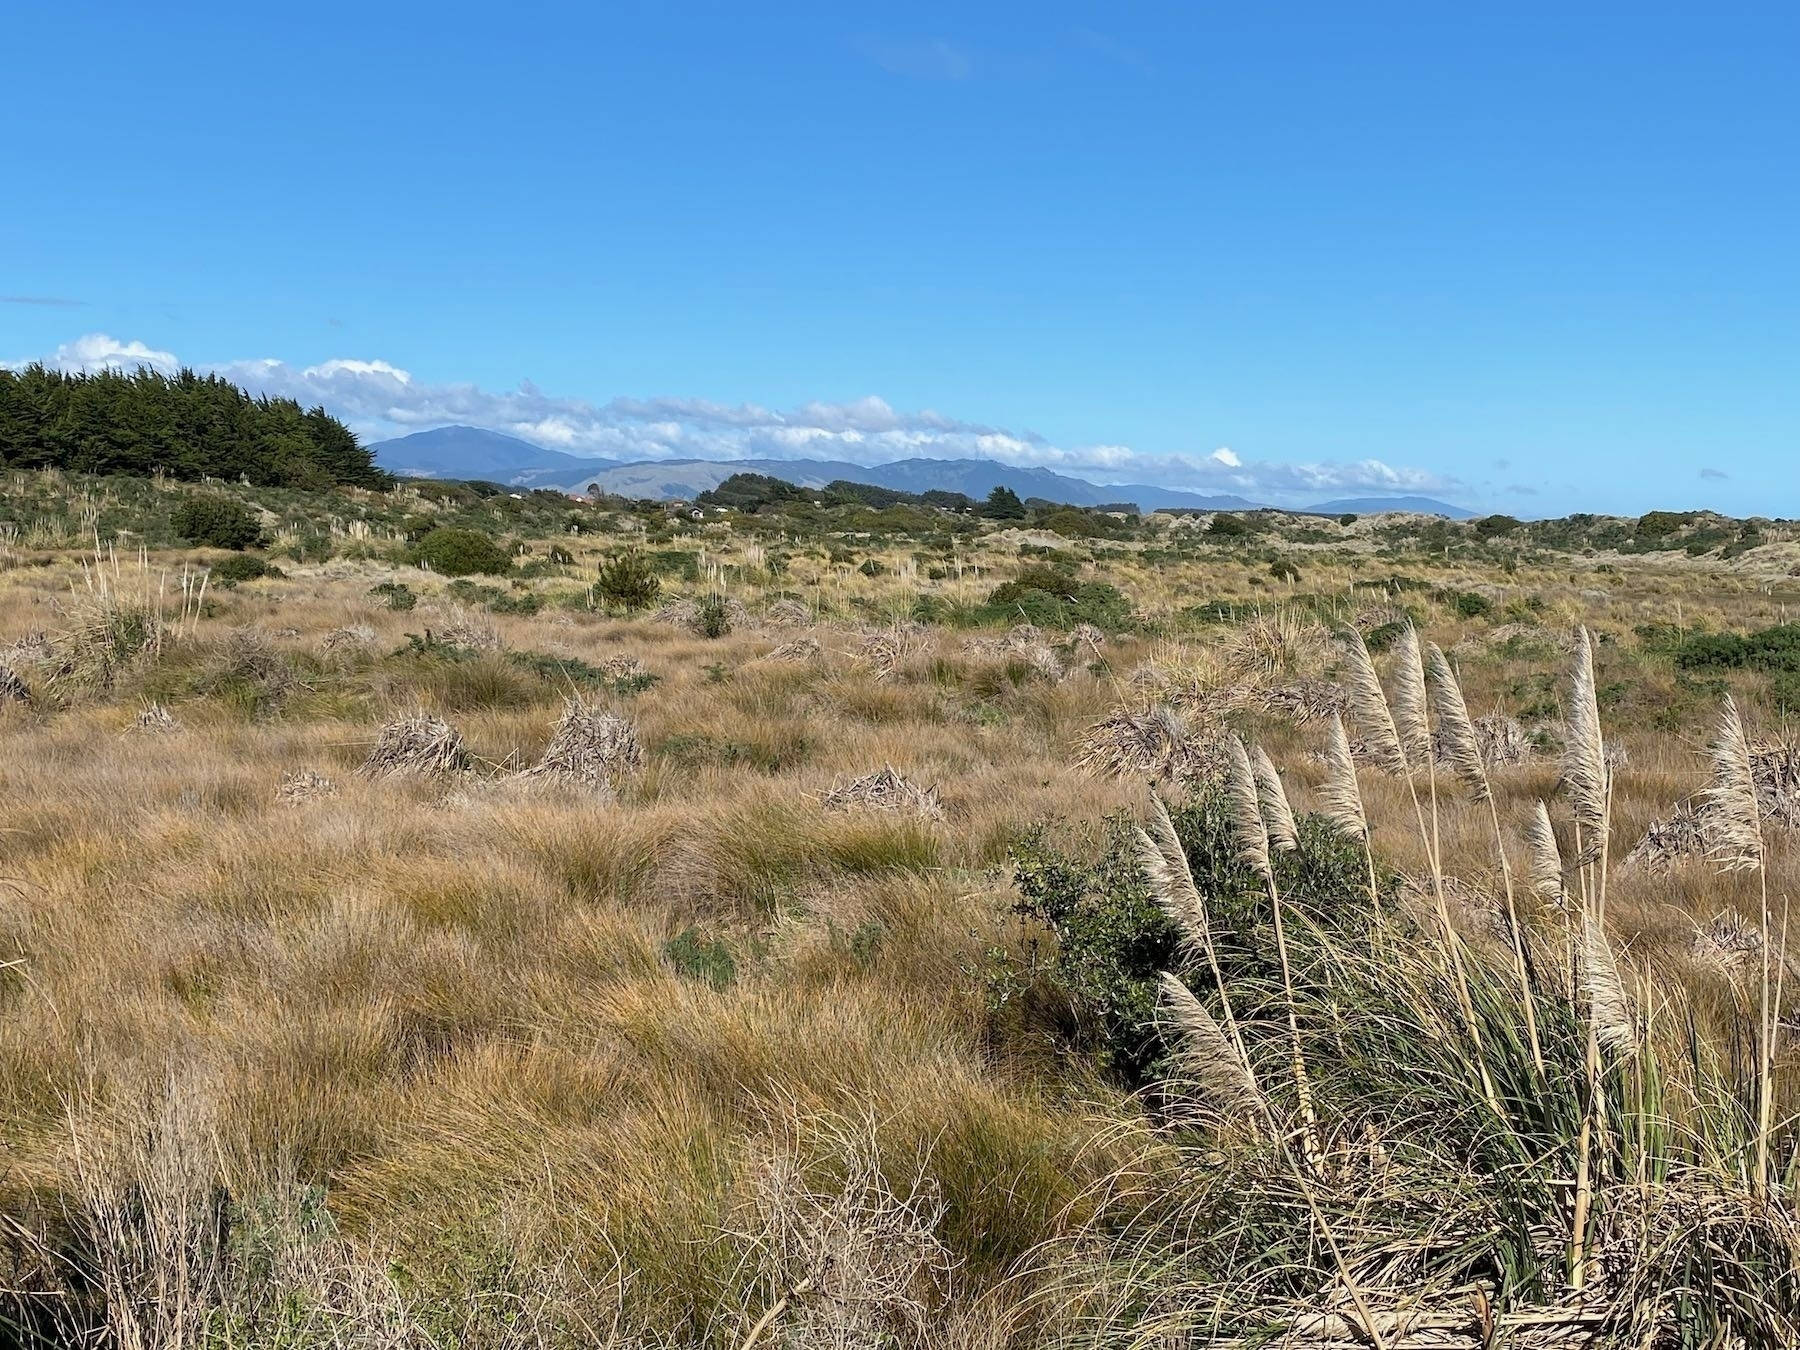 Looking south across grasses and scrub.